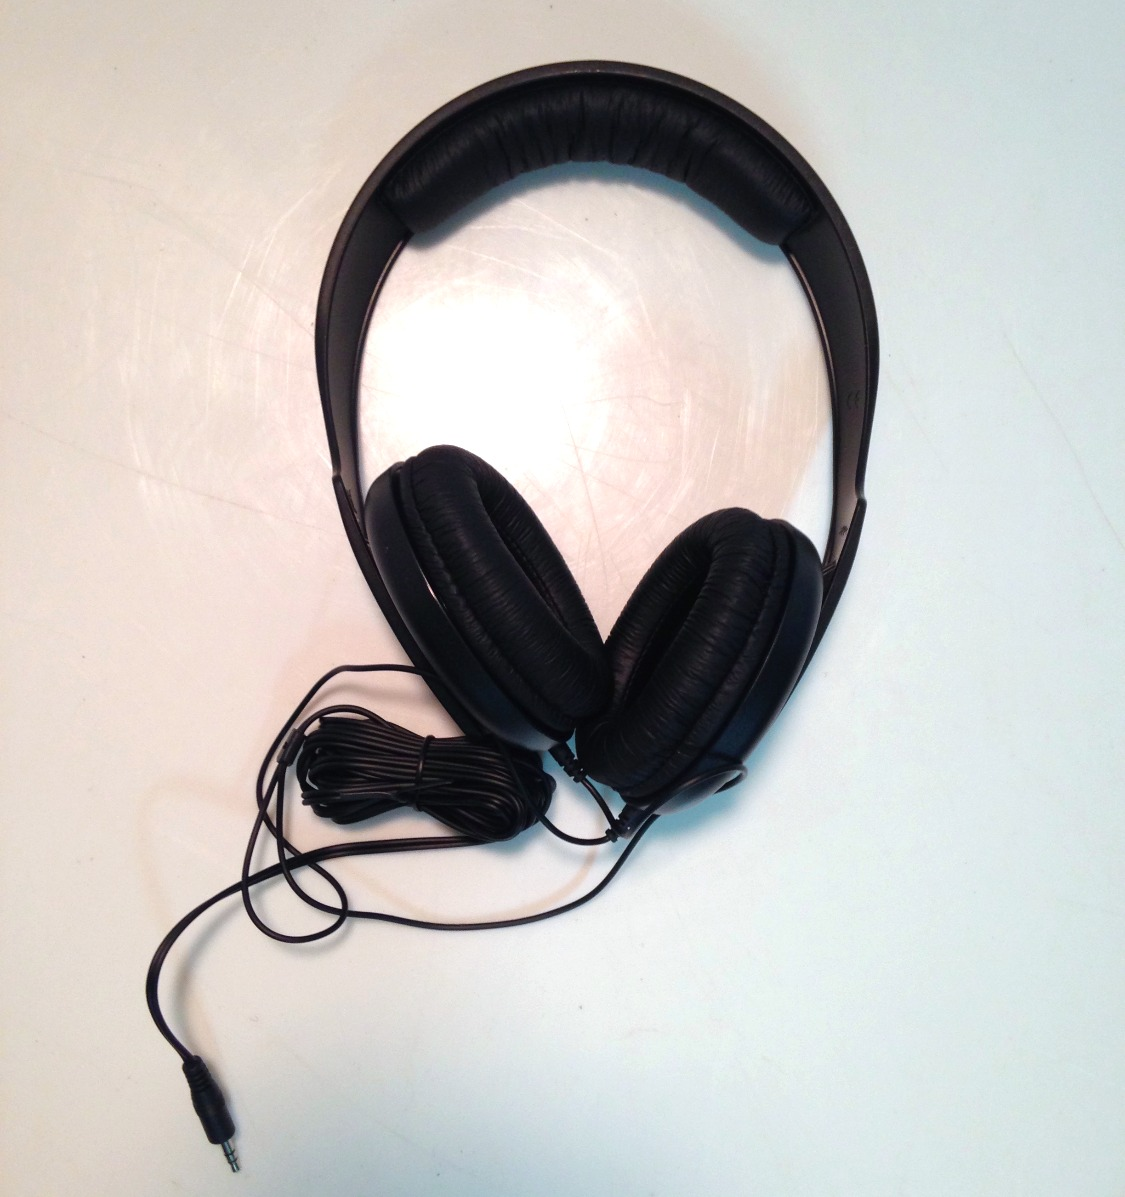 Headphones (Sennheiser)